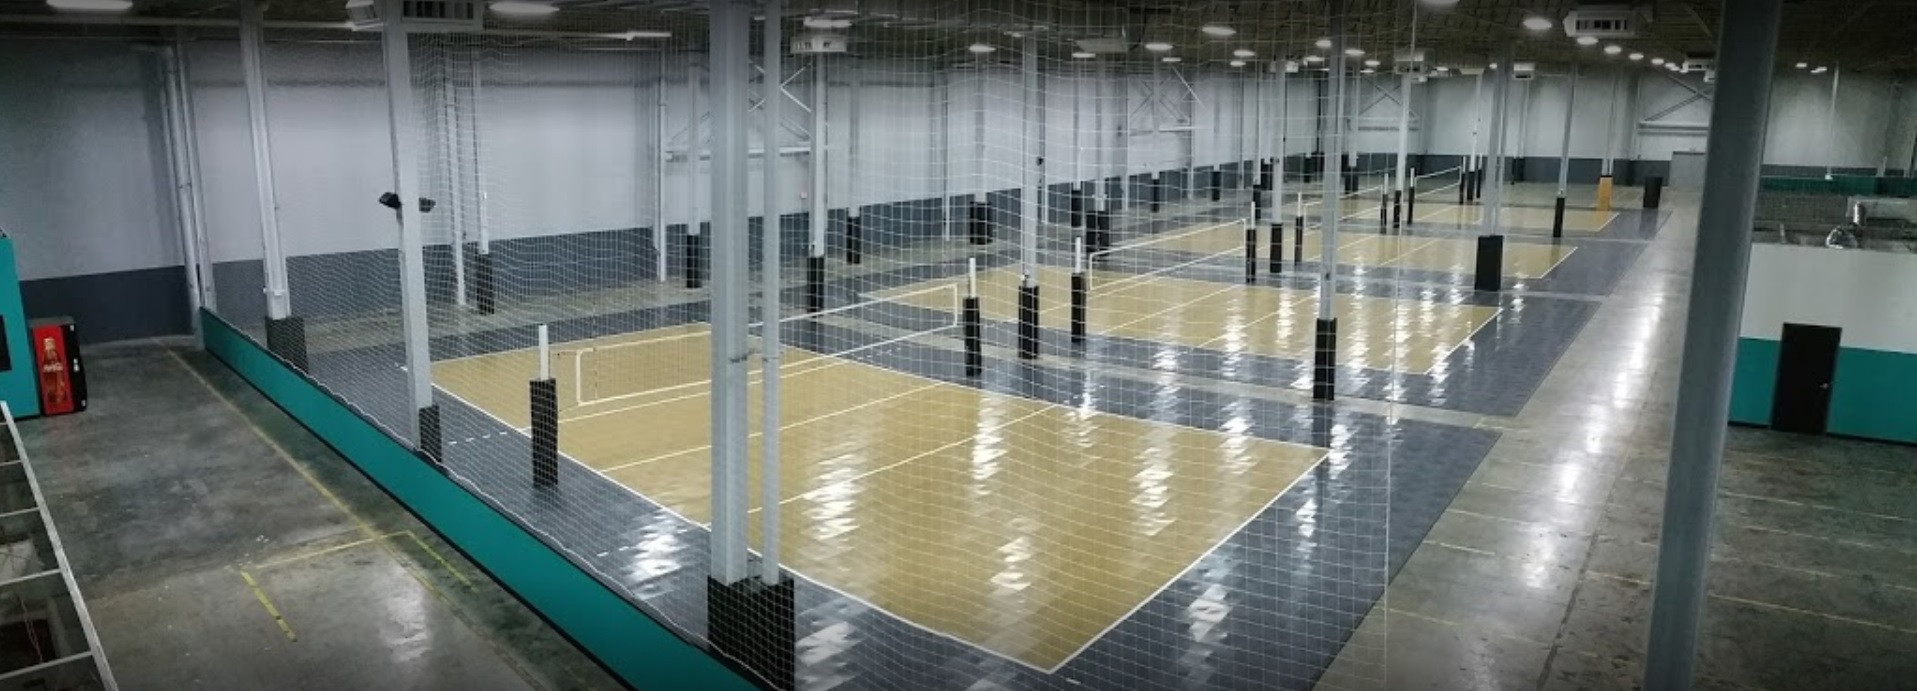 11 Volleyball Courts